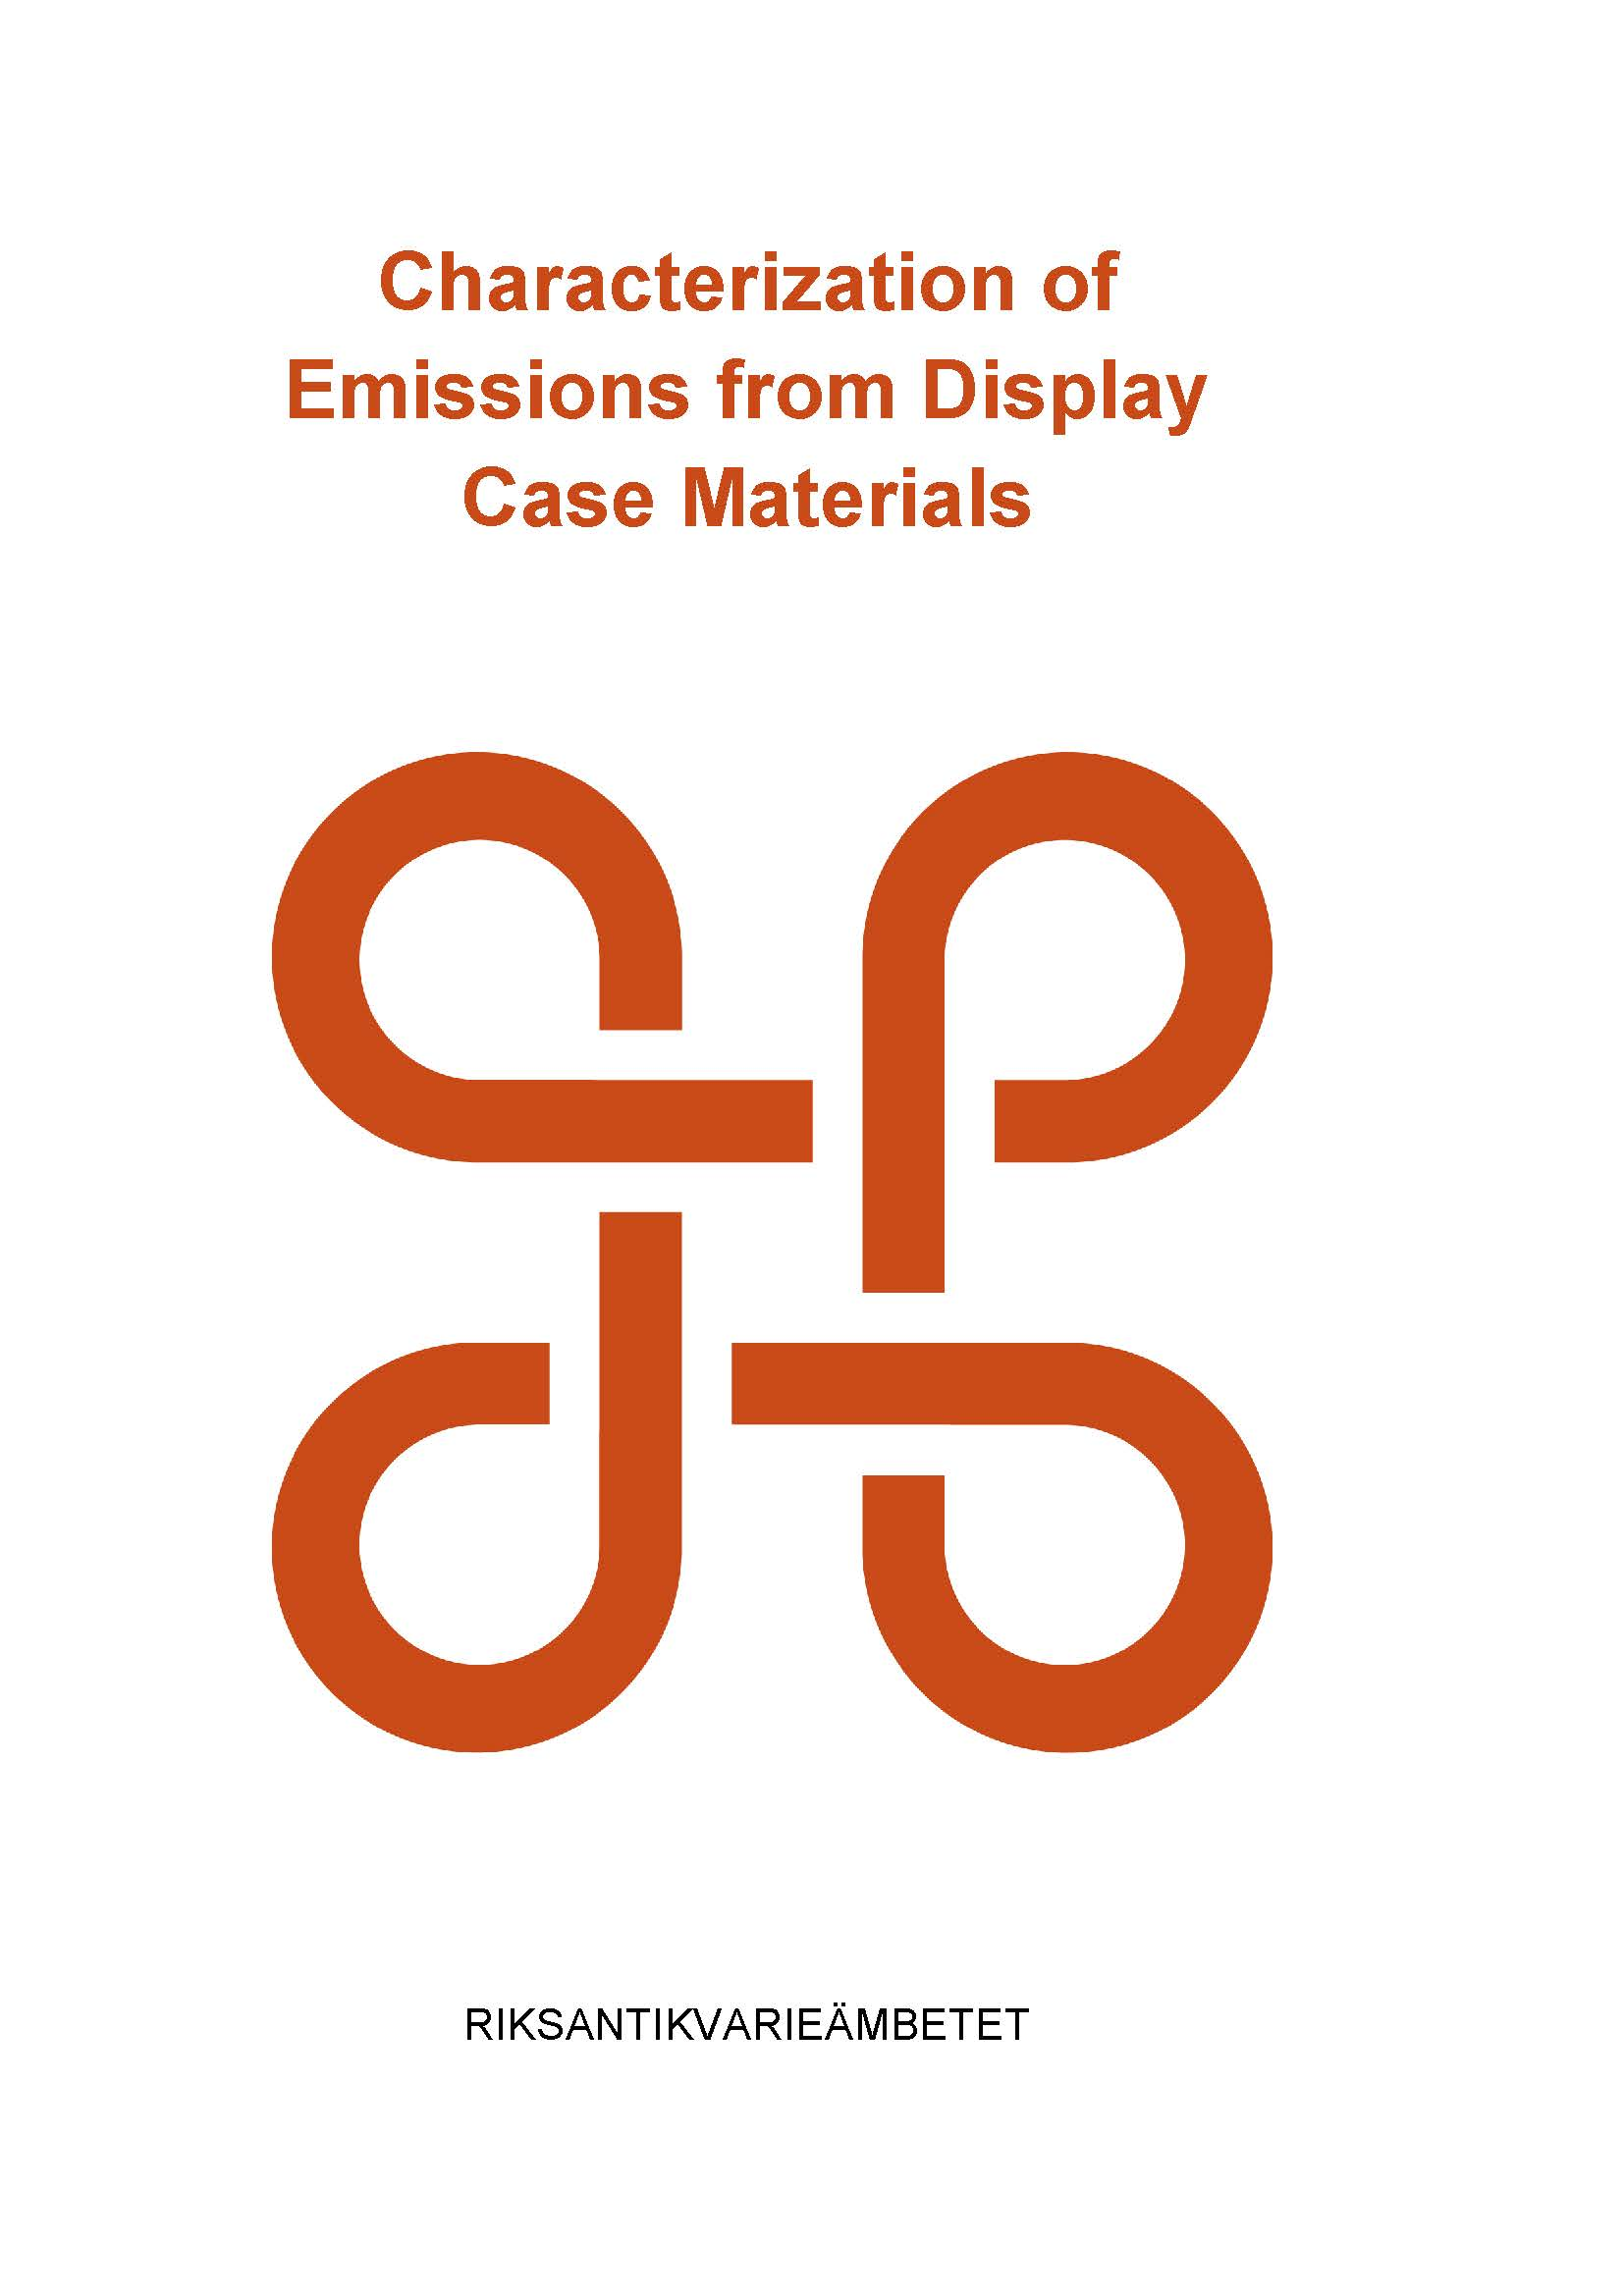 Characterization of Emissions from Display Case Materials